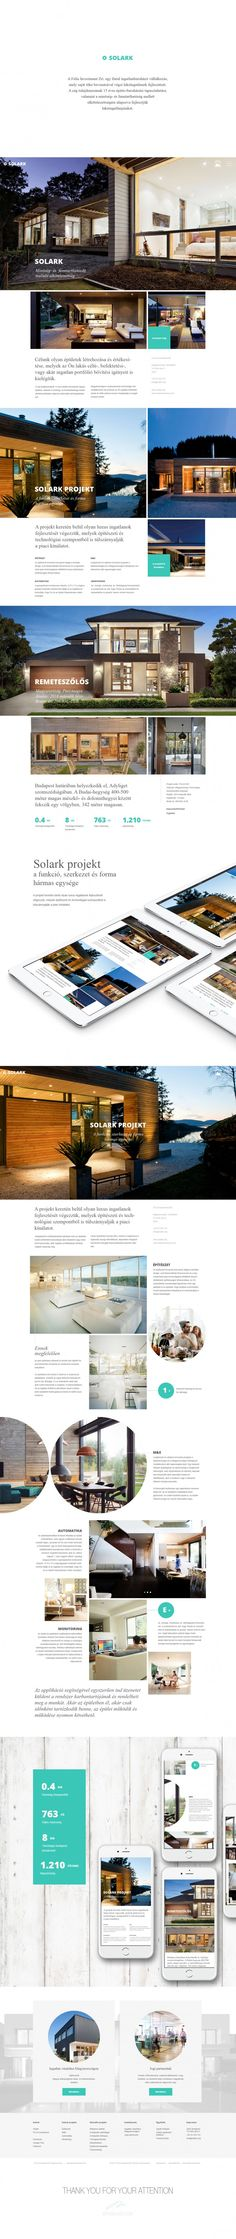 Solark. Luxury home near to Budapest, Hungary. Responsive webdesign concept.